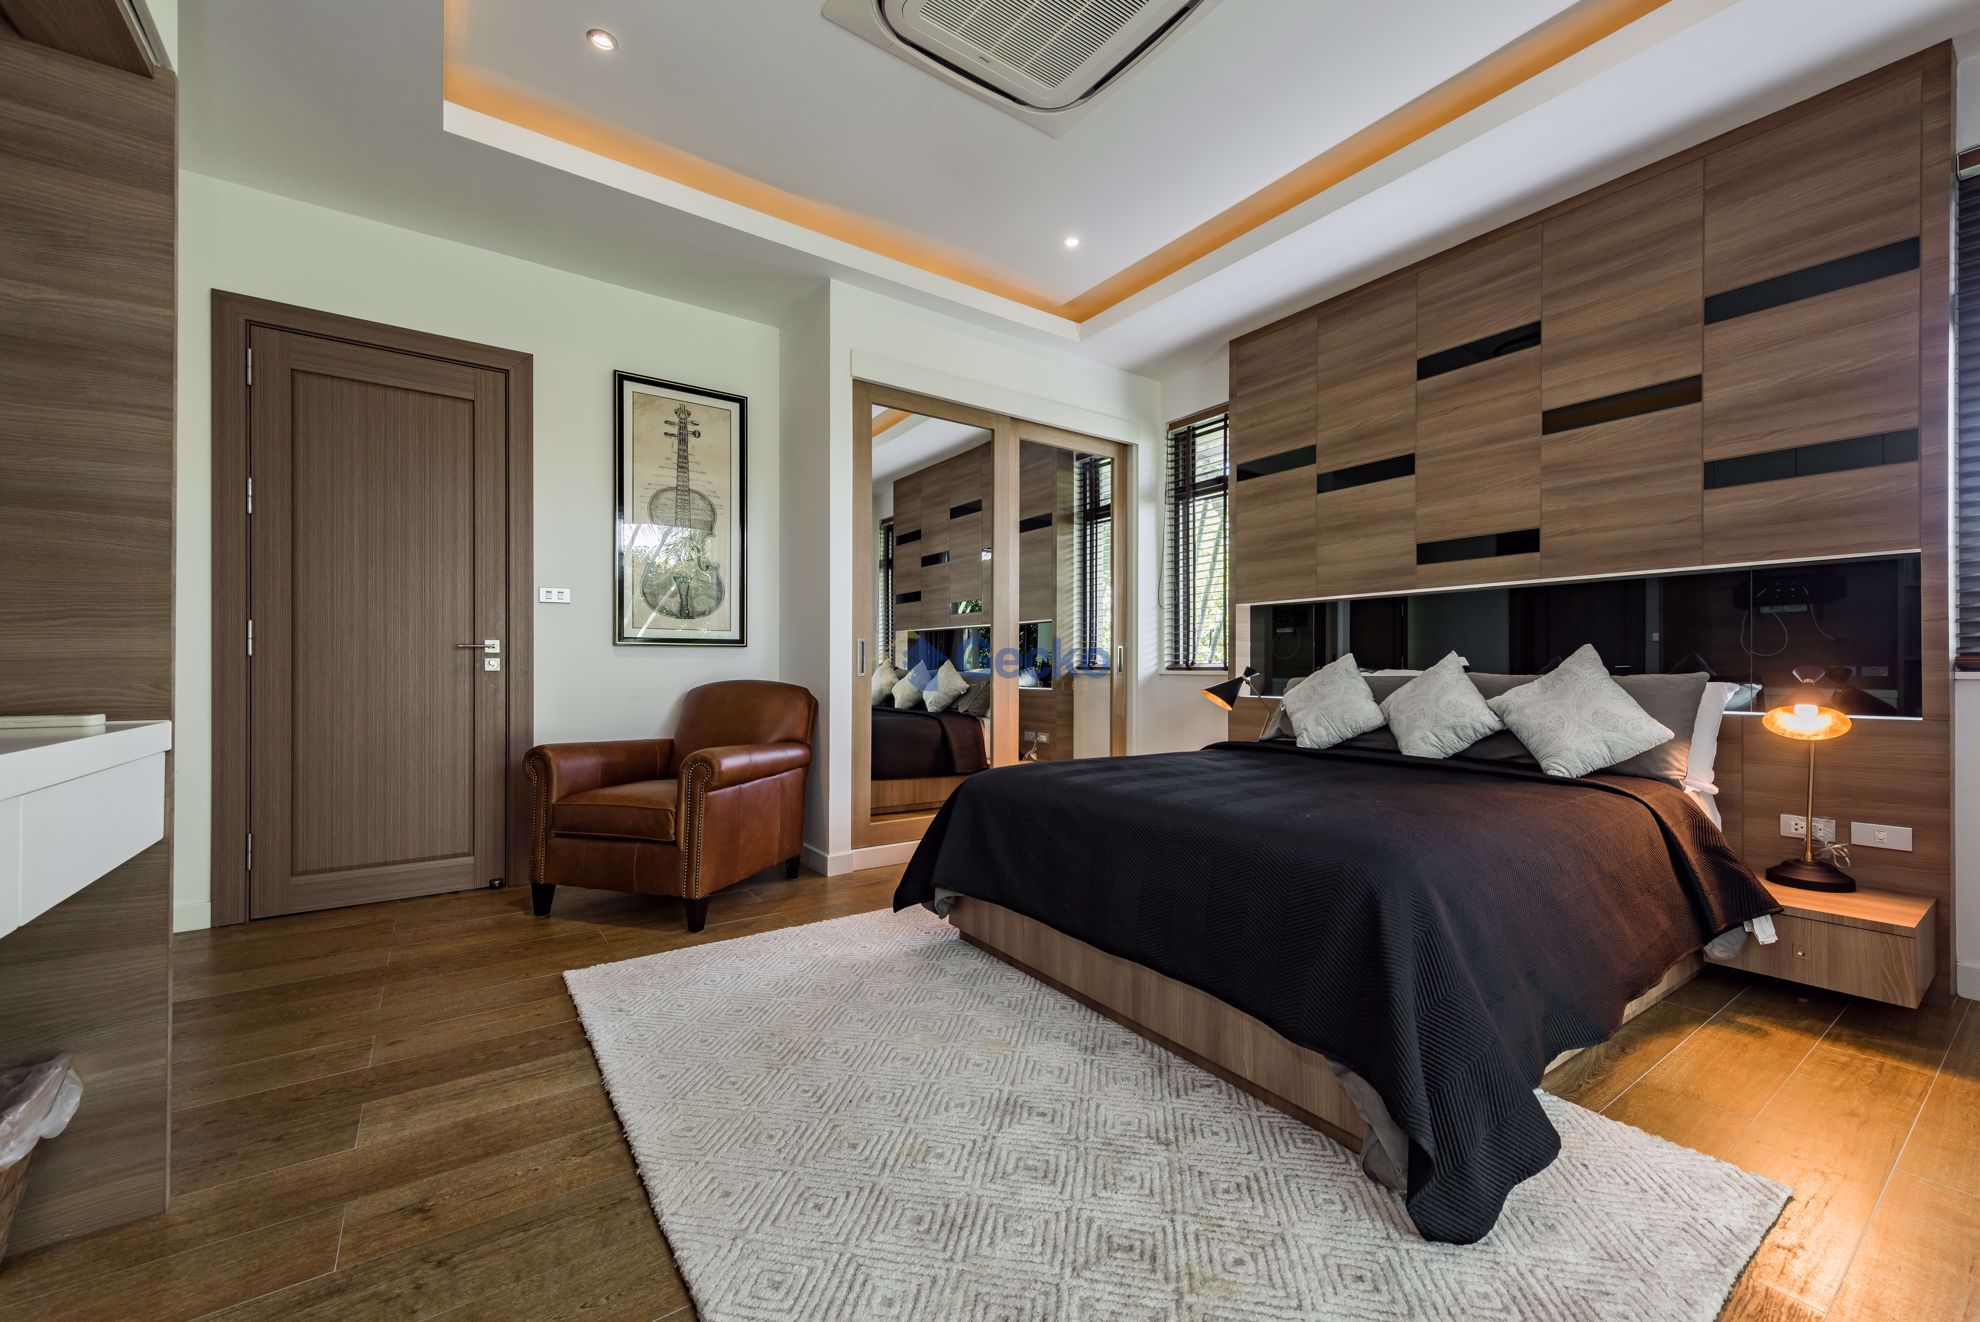 Picture of 3 Bedrooms bed in House in The Vineyard Phase III in East Pattaya H009183